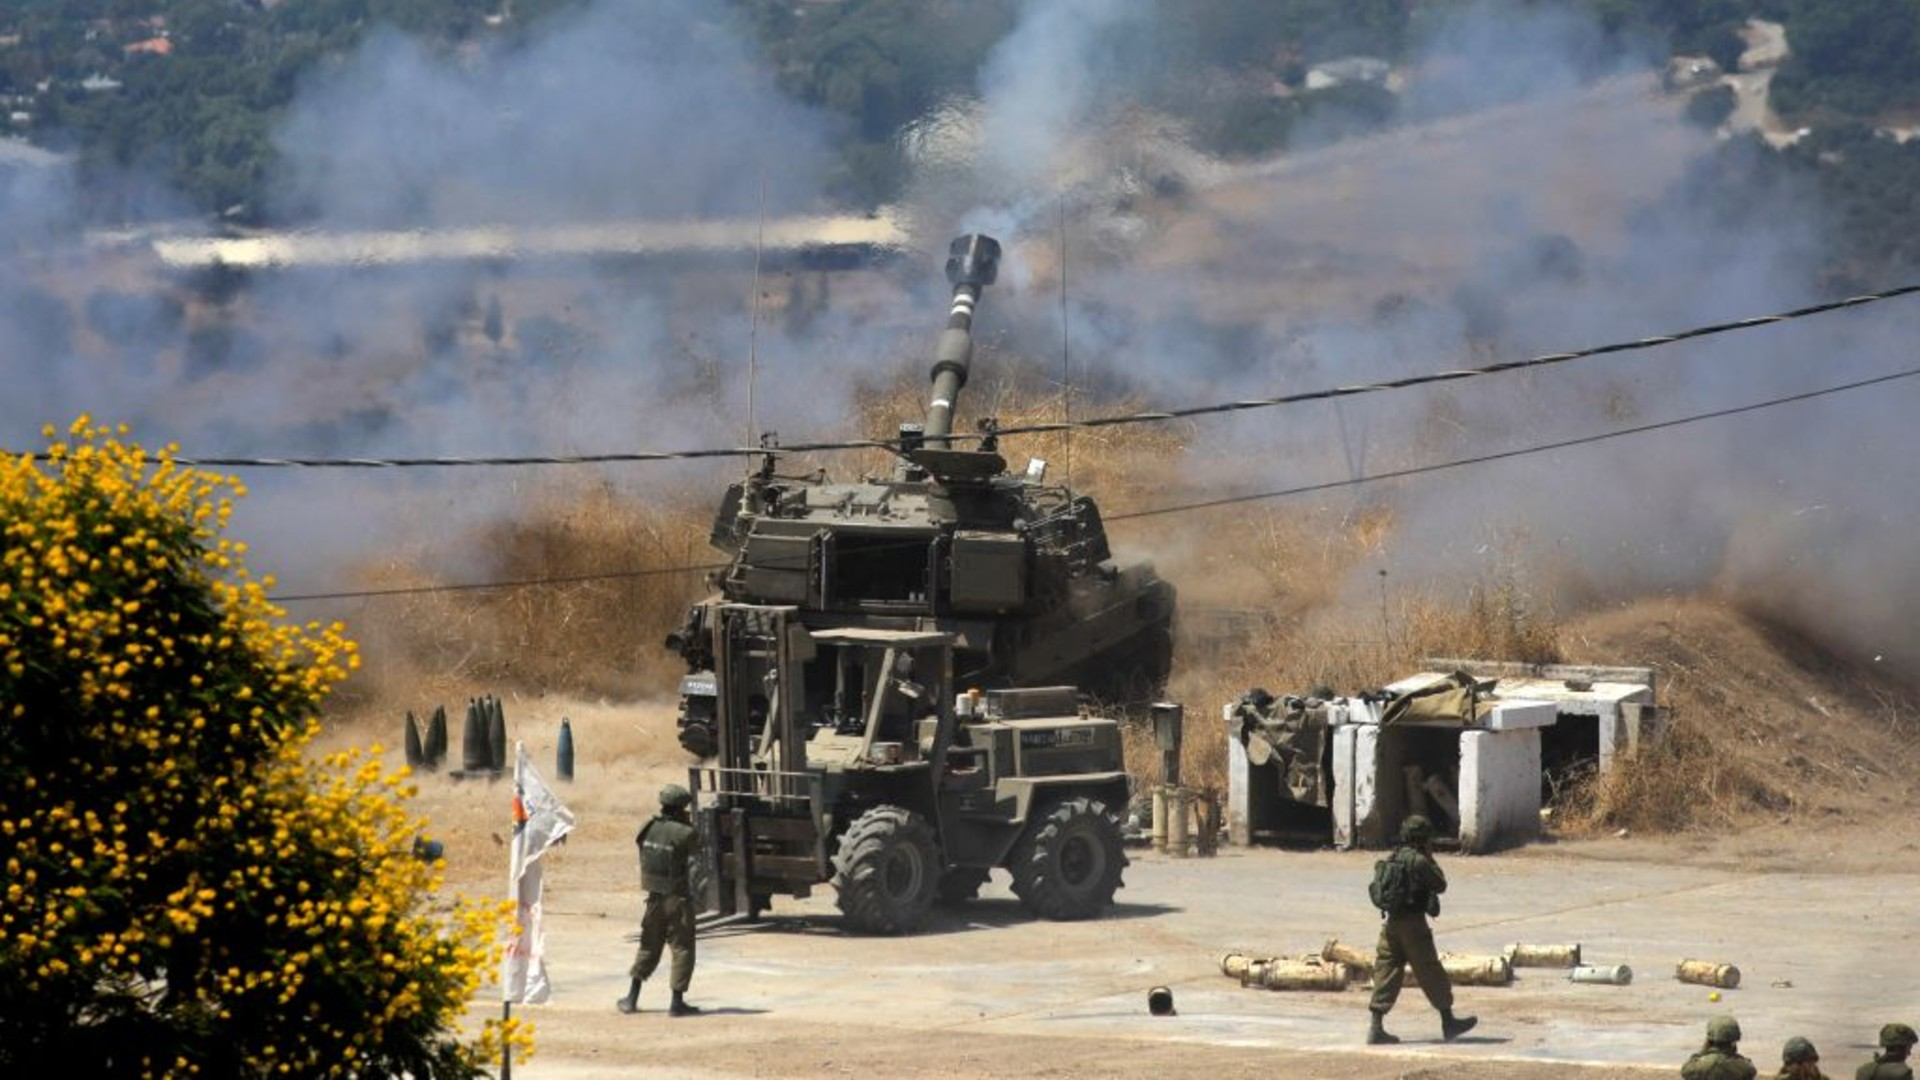 Israeli self-propelled howitzers fire towards Lebanon from the northern Israeli town of Kiryat Shmona following rocket fire from the Lebanese side of the border, on August 4, 2021. (JALAA MAREY/AFP via Getty Images)